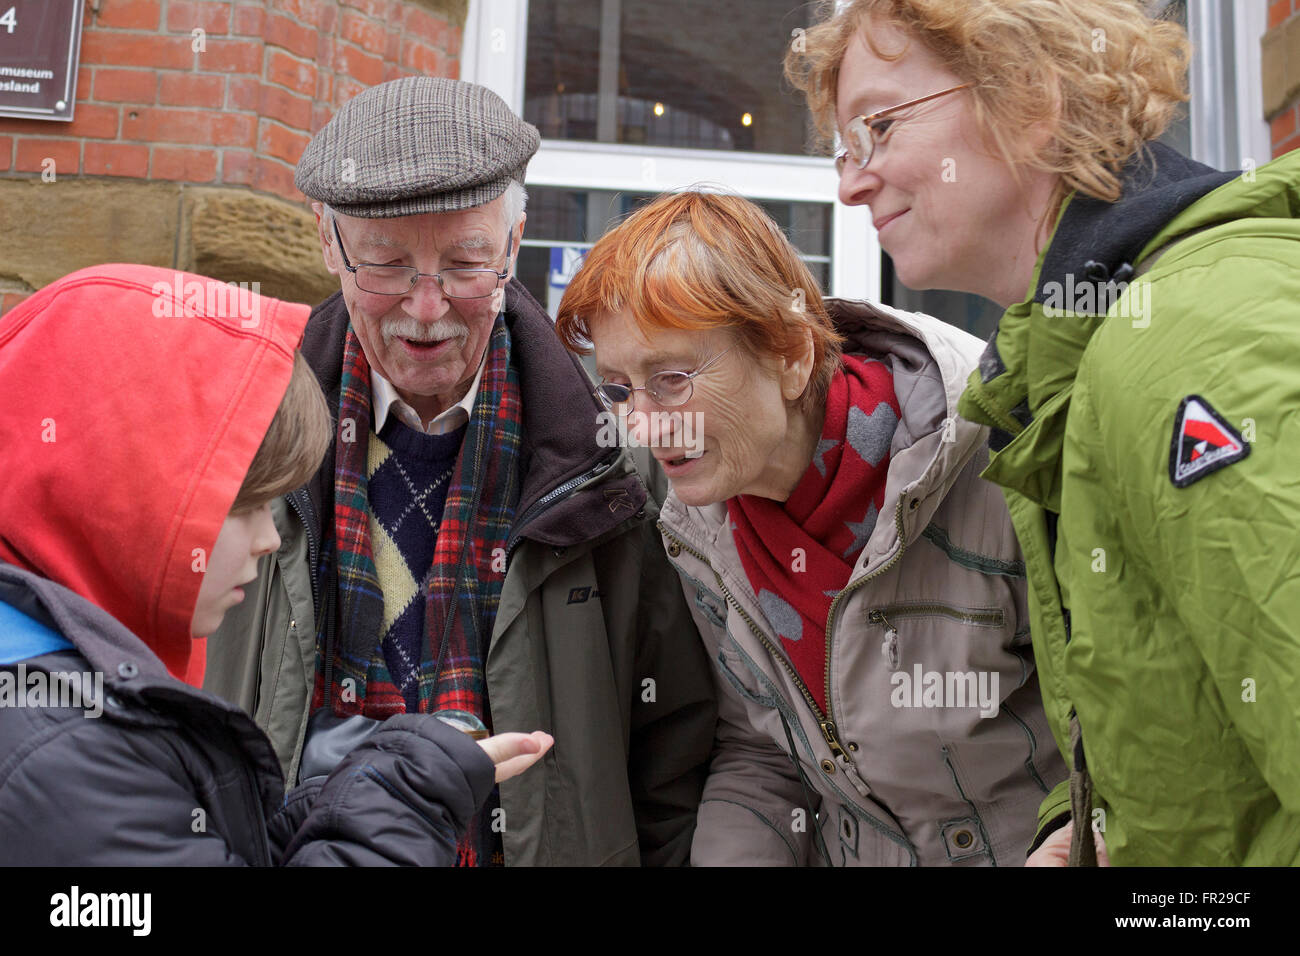 grandparents and mother admiring what child is showing them - Stock Image